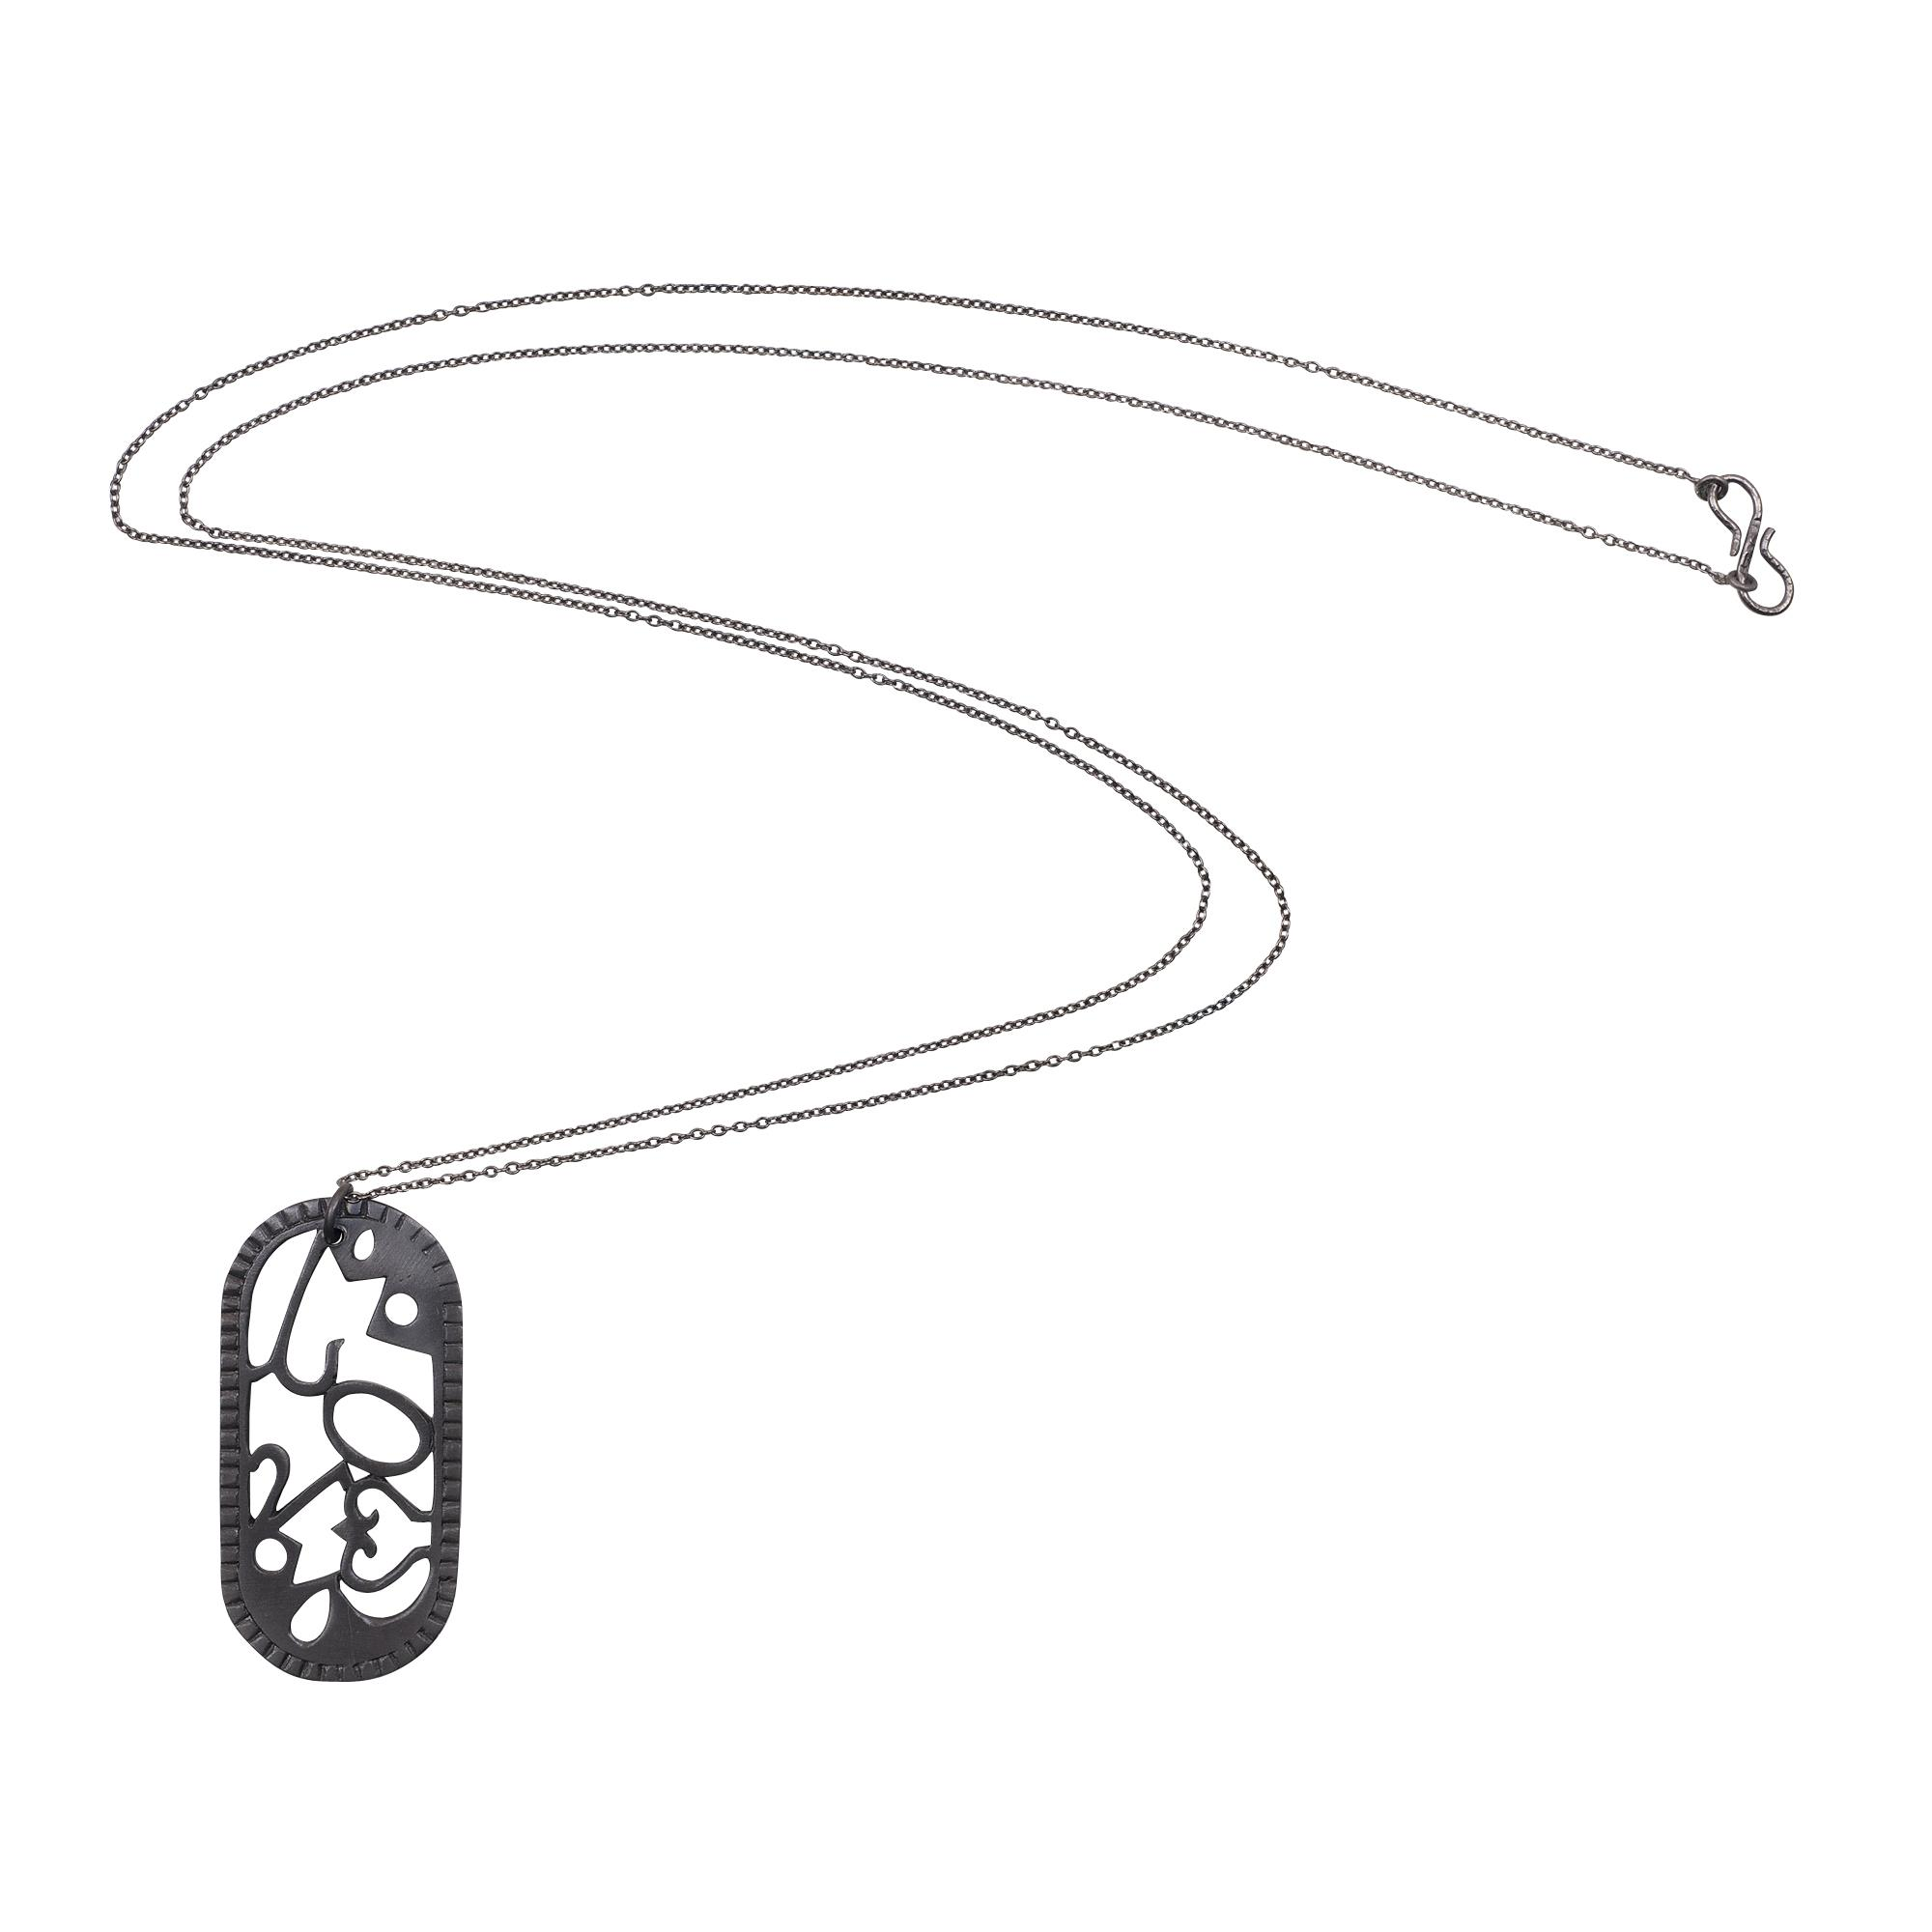 Handmade 925 solid sterling silver oxidized designer pendant with chain